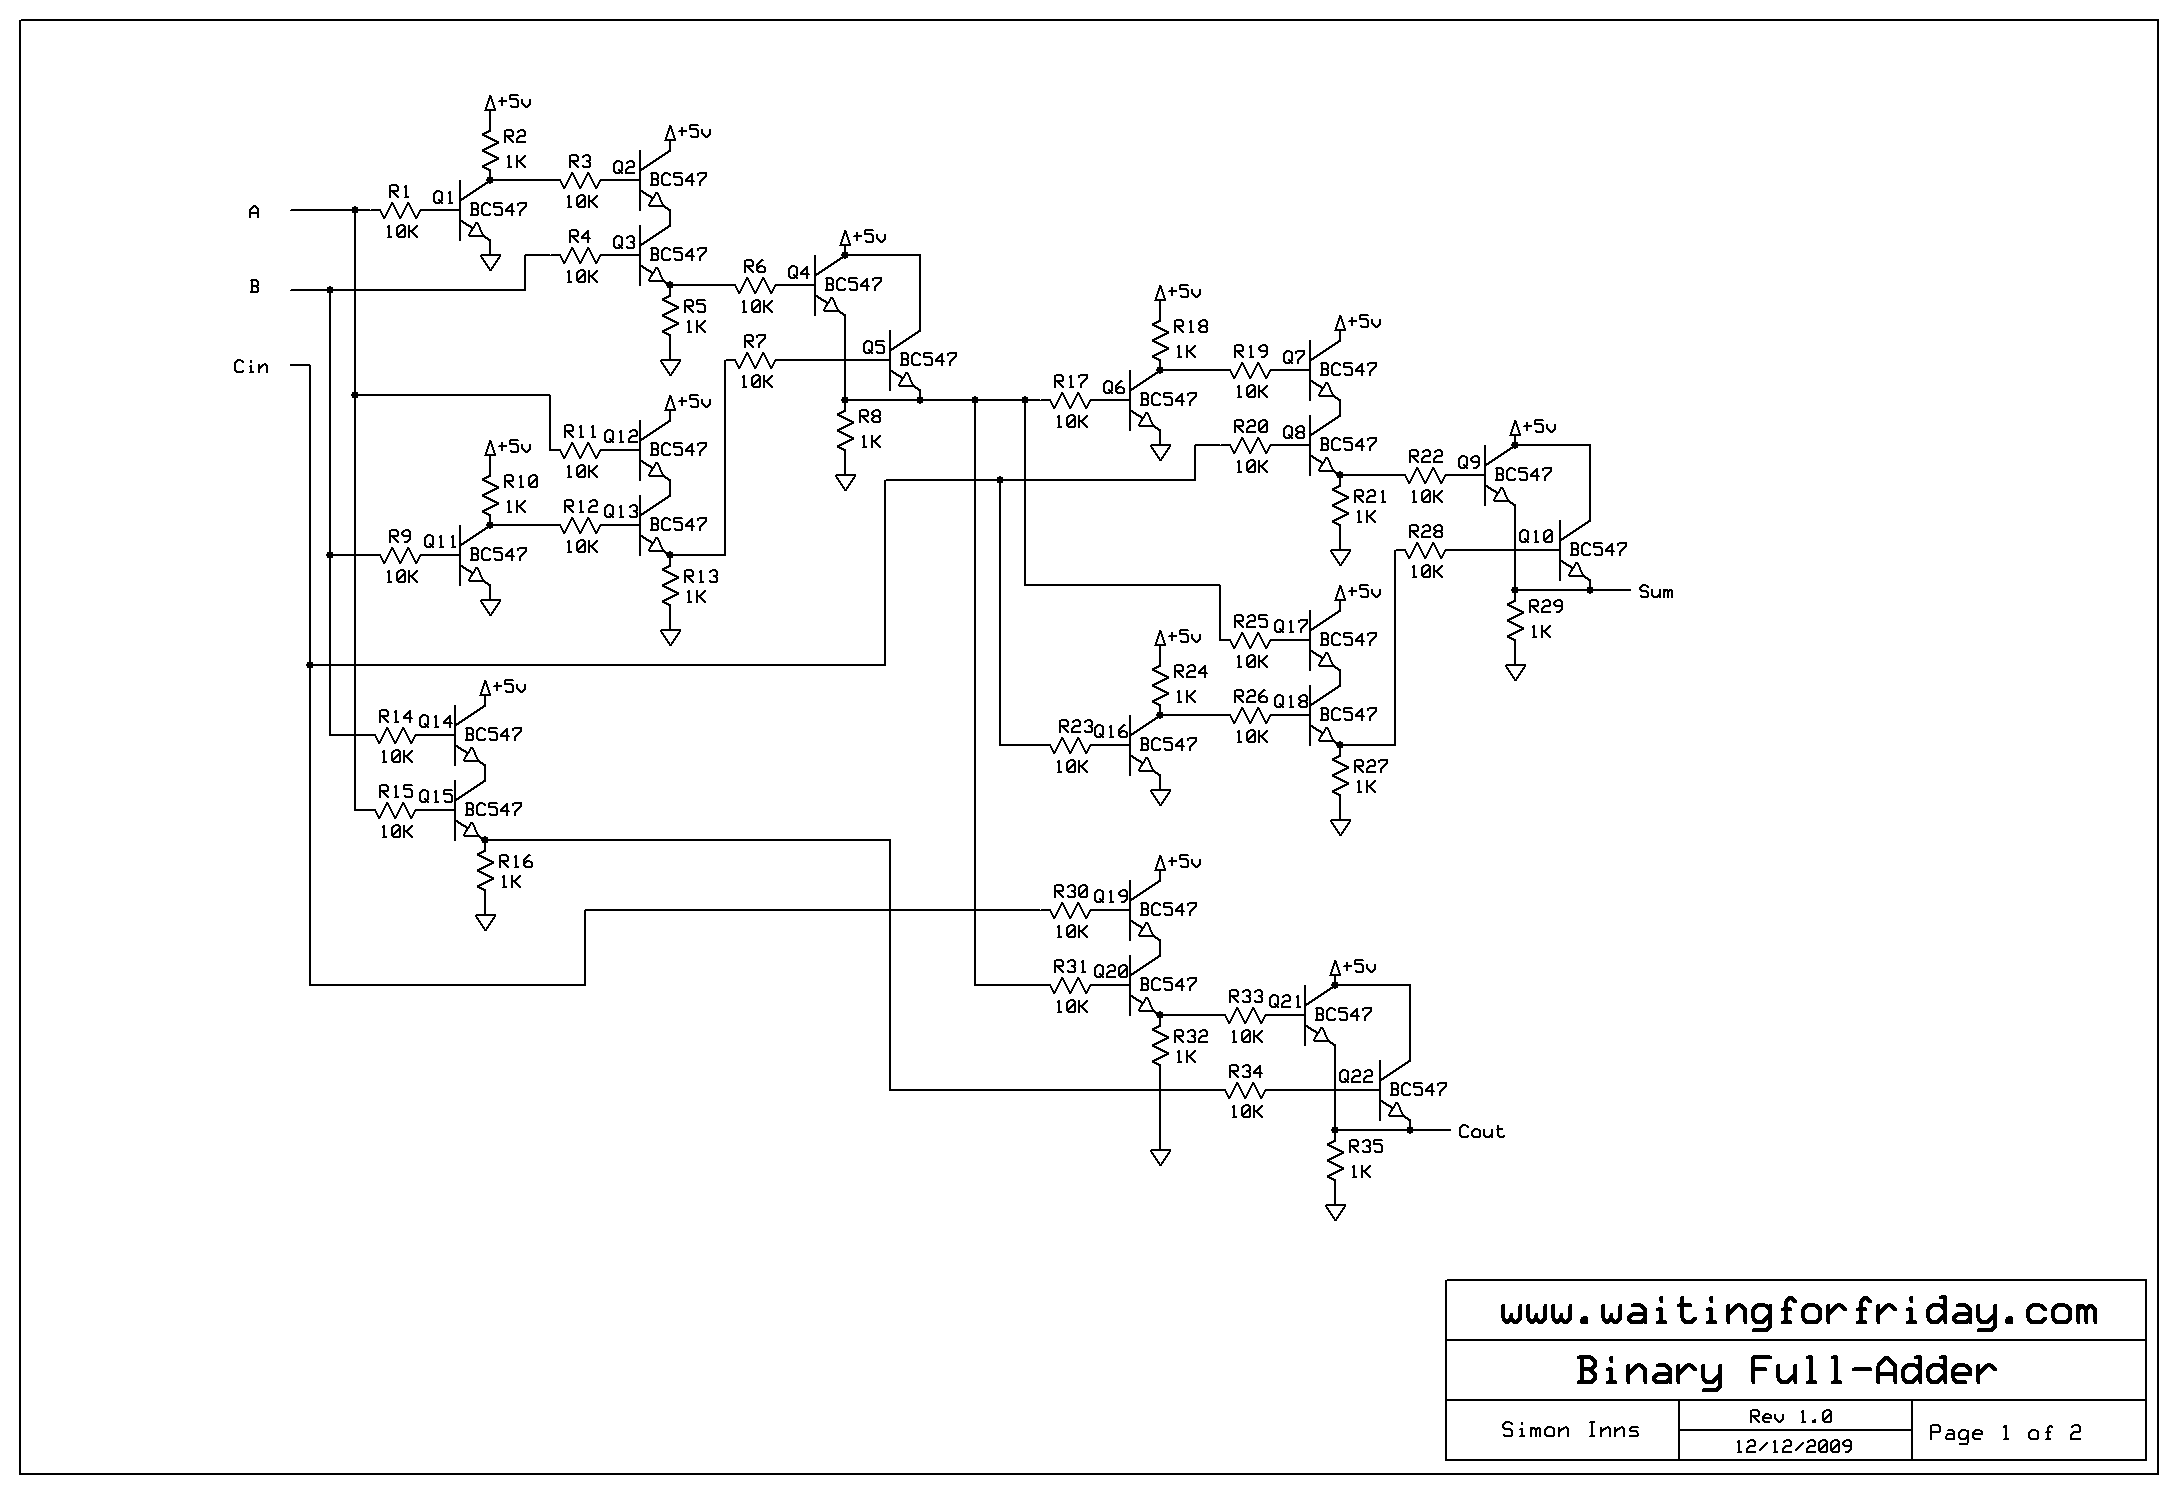 Full-adder circuit schematic